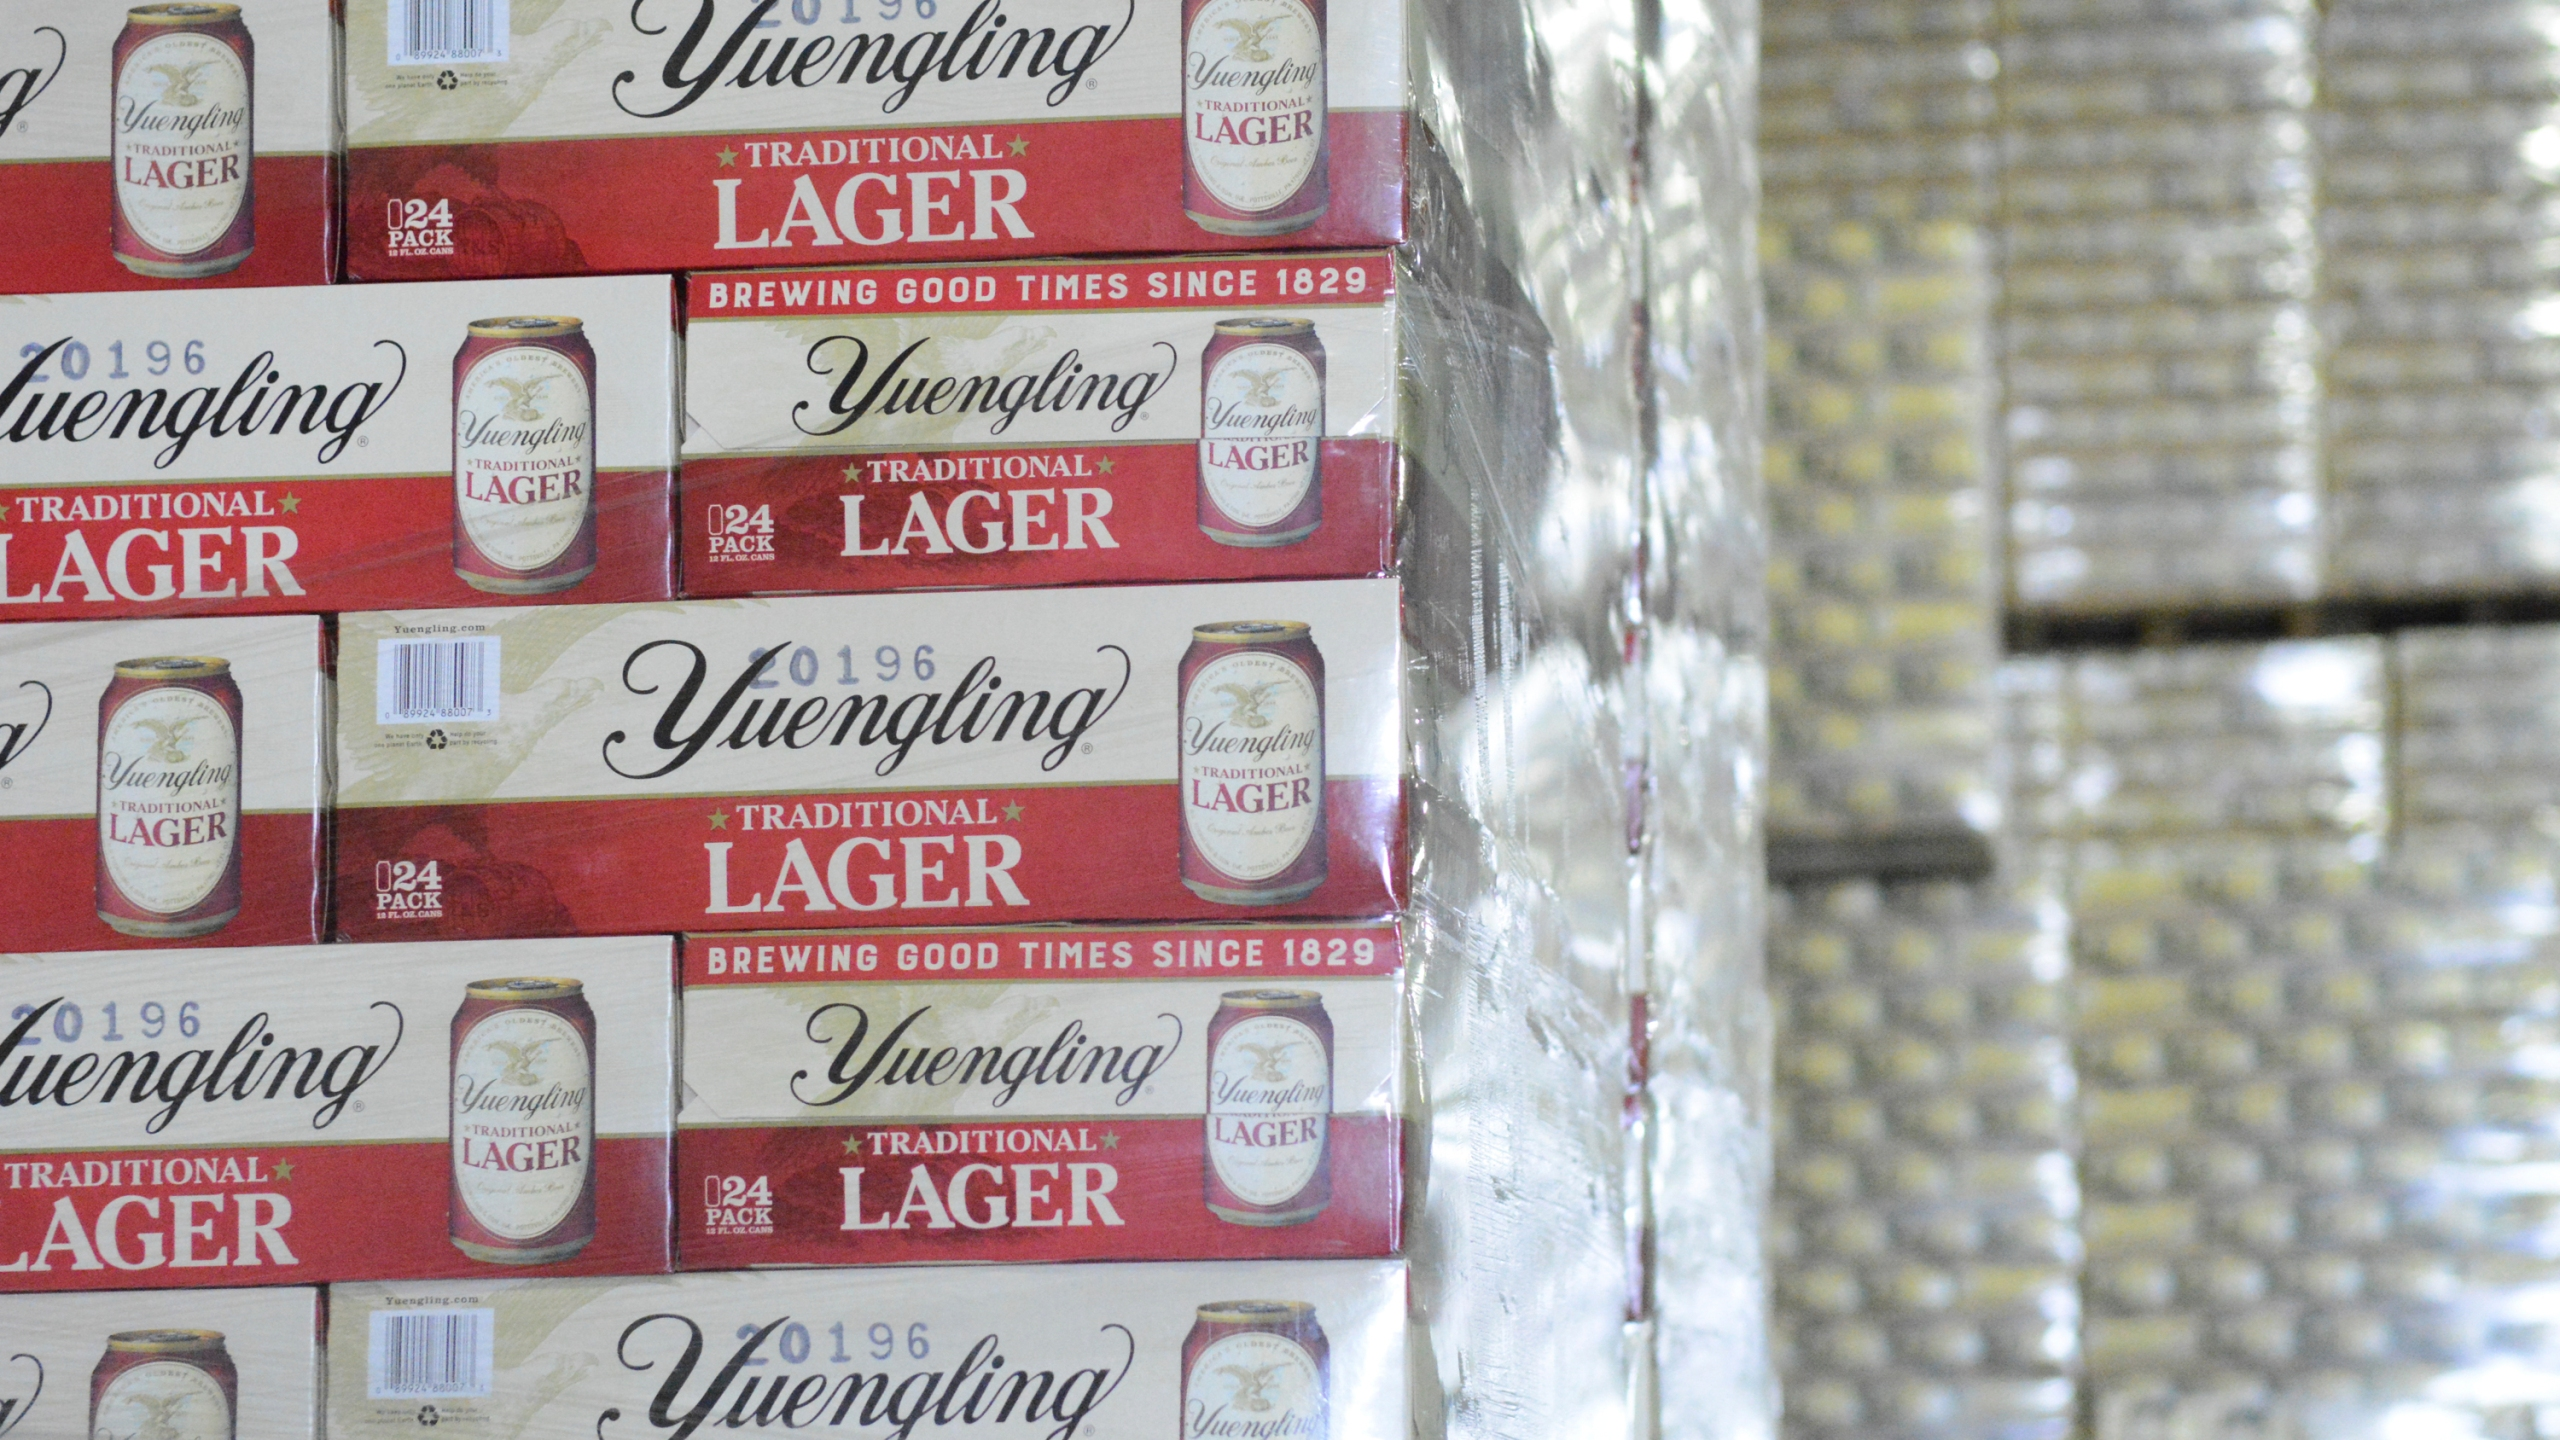 FILE - Cases of canned Yuengling Traditional Lager are stacked in the warehouse of the D.G. Yuengling & Son Brewery Mill Creek plant on Tuesday, July 21, 2020, in Pottsville, Pa.(Lindsey Shuey/Republican-Herald via AP, File)